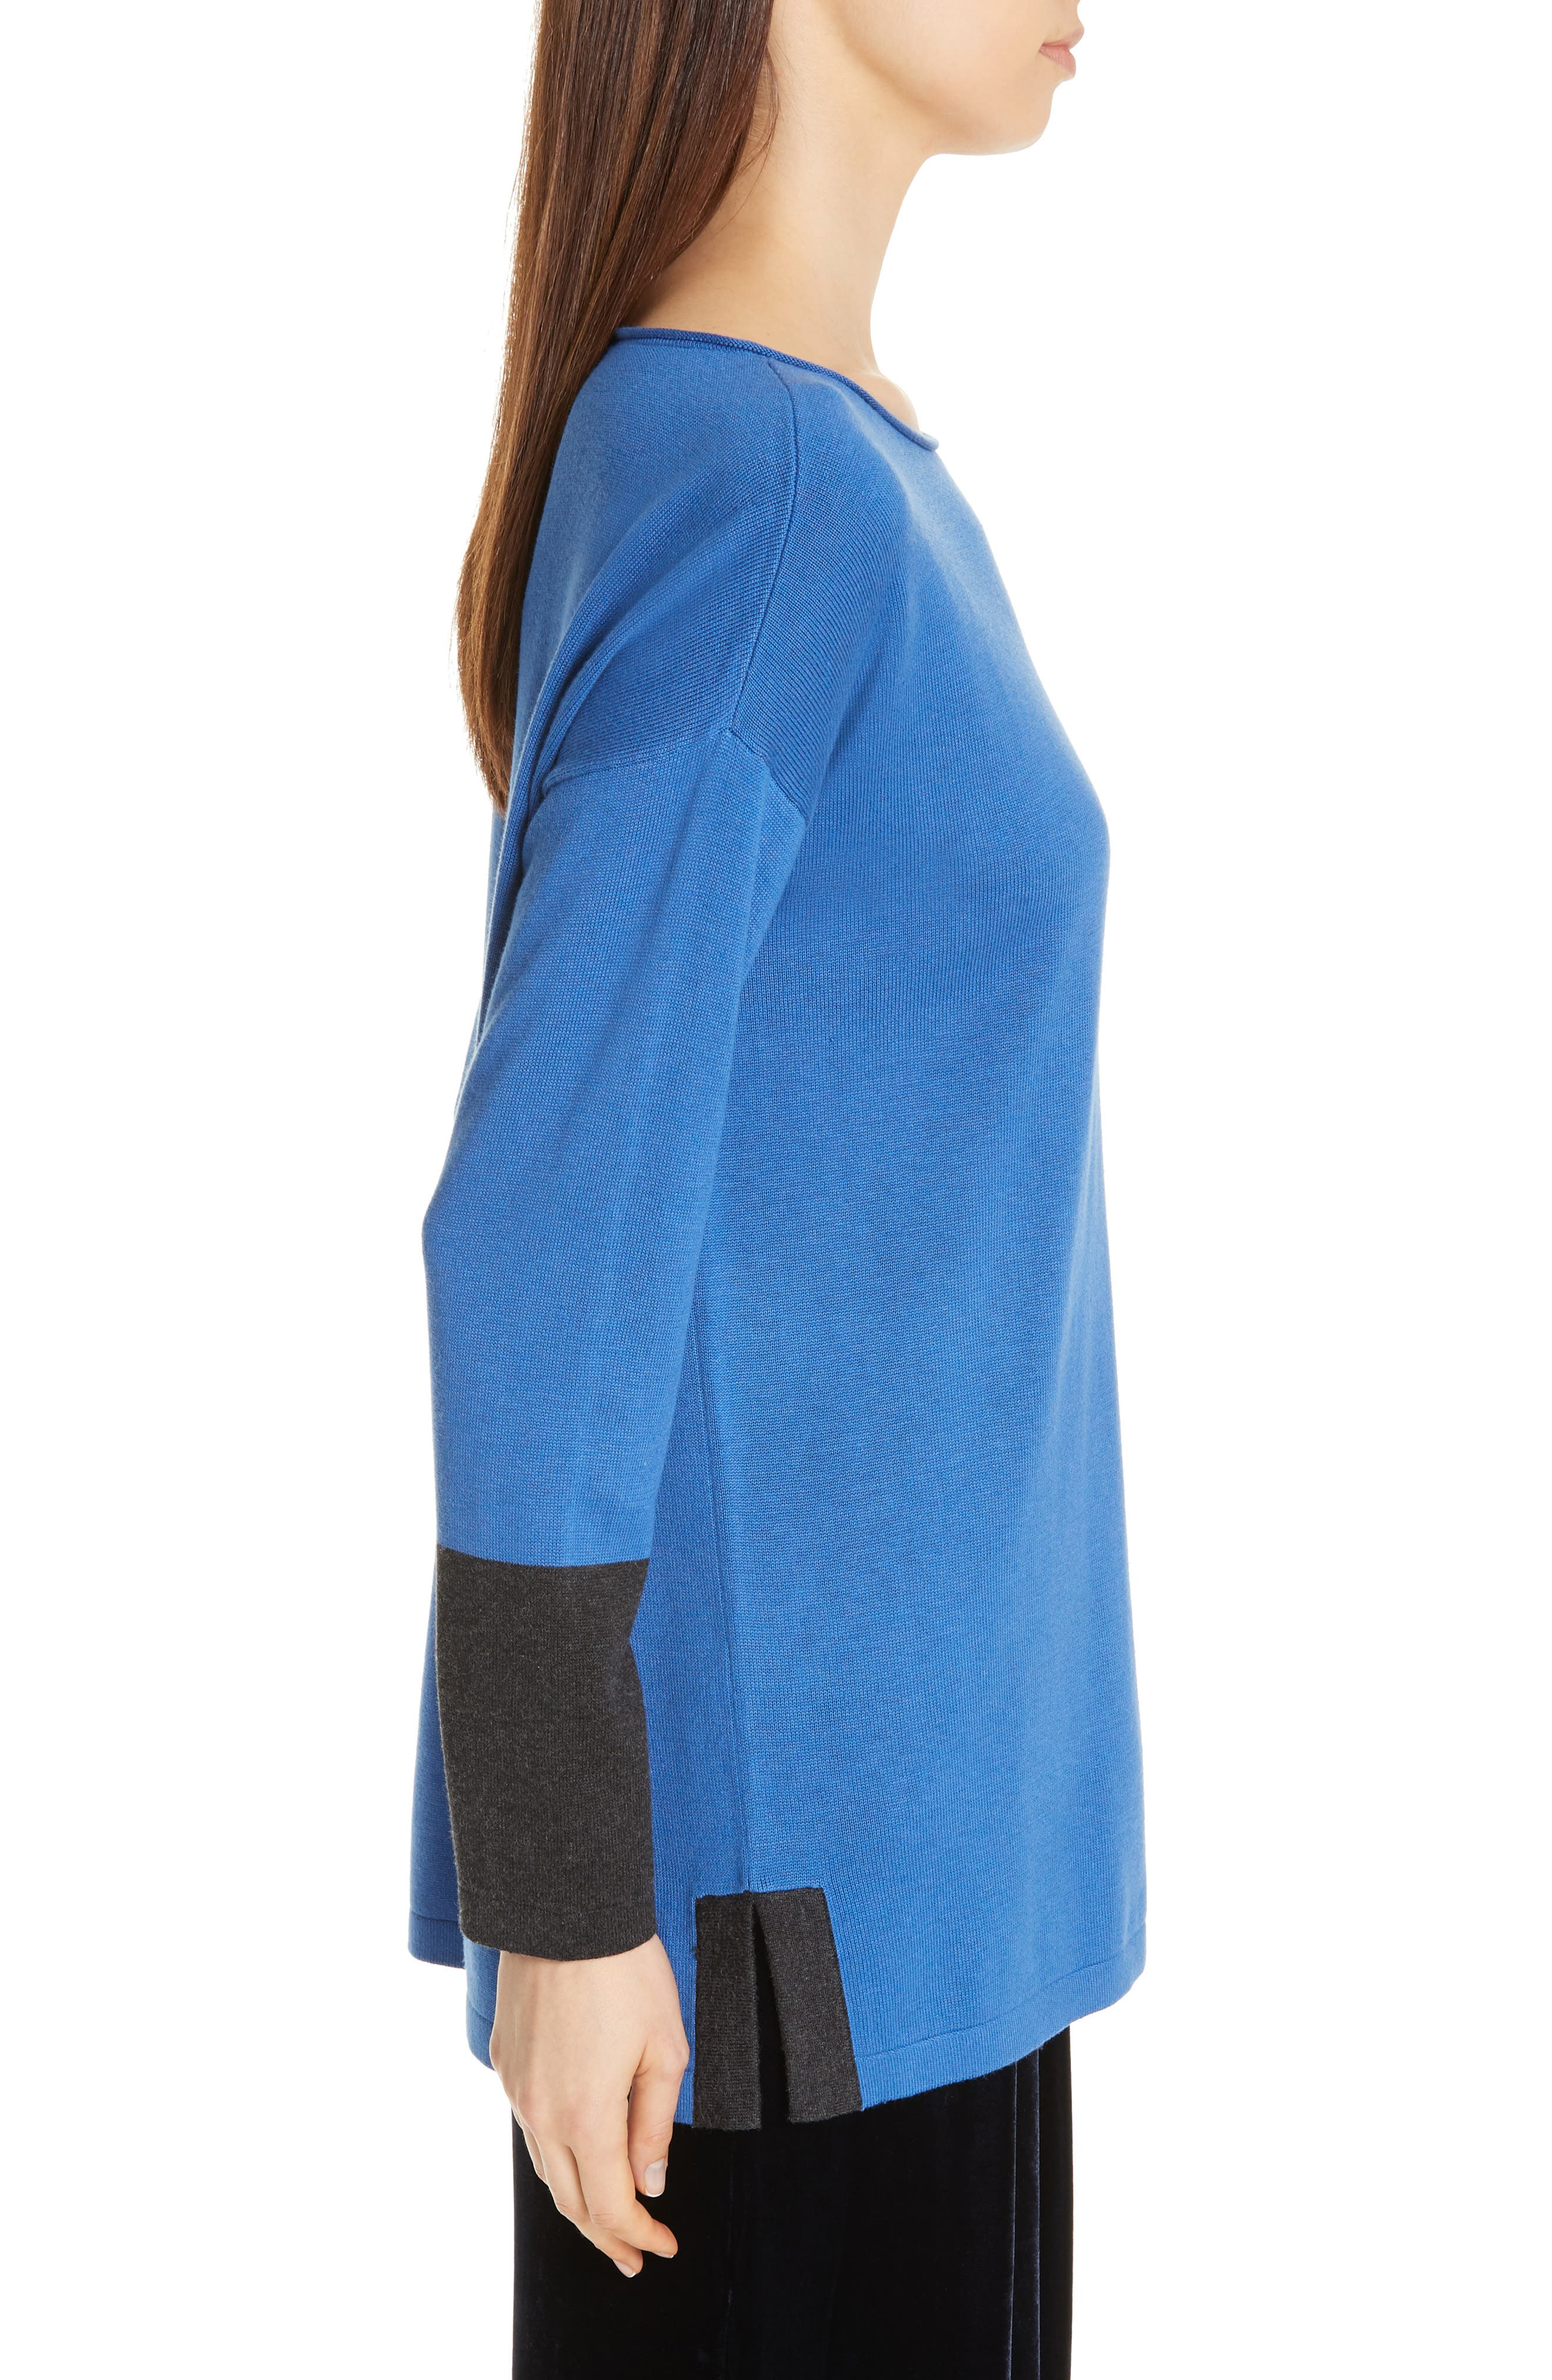 EILEEN FISHER, Colorblock Sleeve Tunic, Alternate thumbnail 3, color, 400